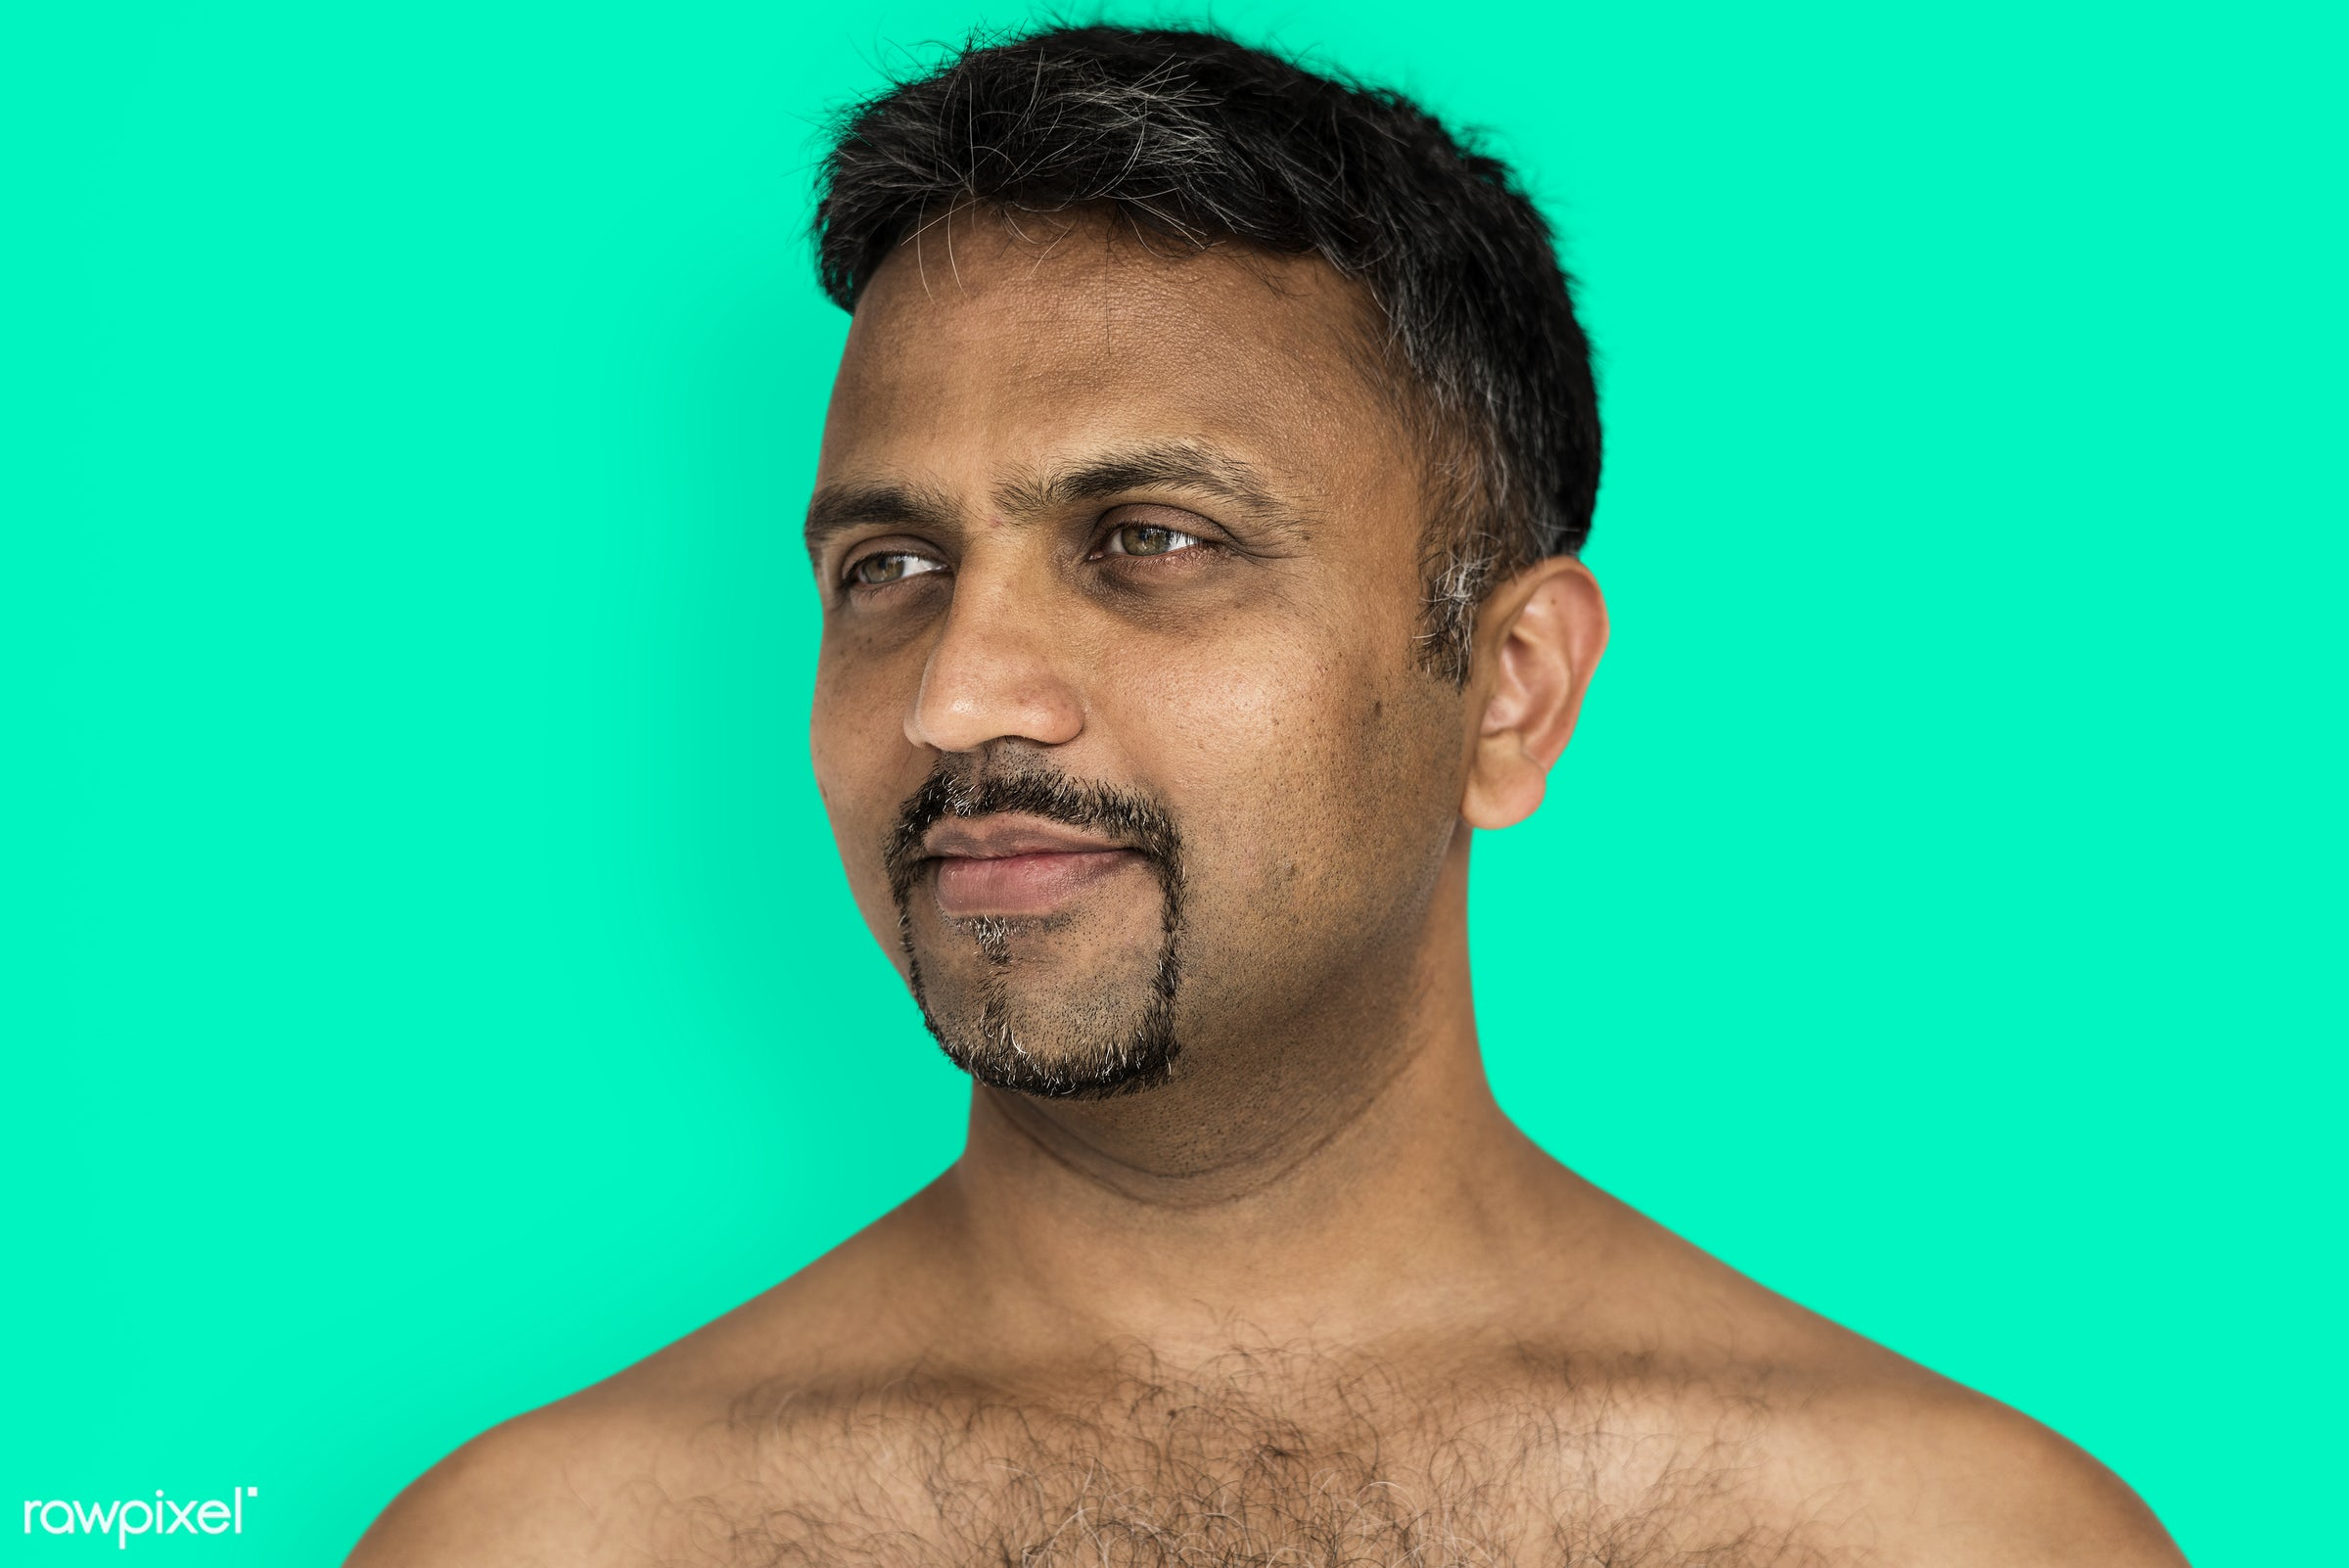 studio, face, person, joy, indian ethnicity, people, bare chest, looking, solo, happy, smile, cheerful, man, smiling,...